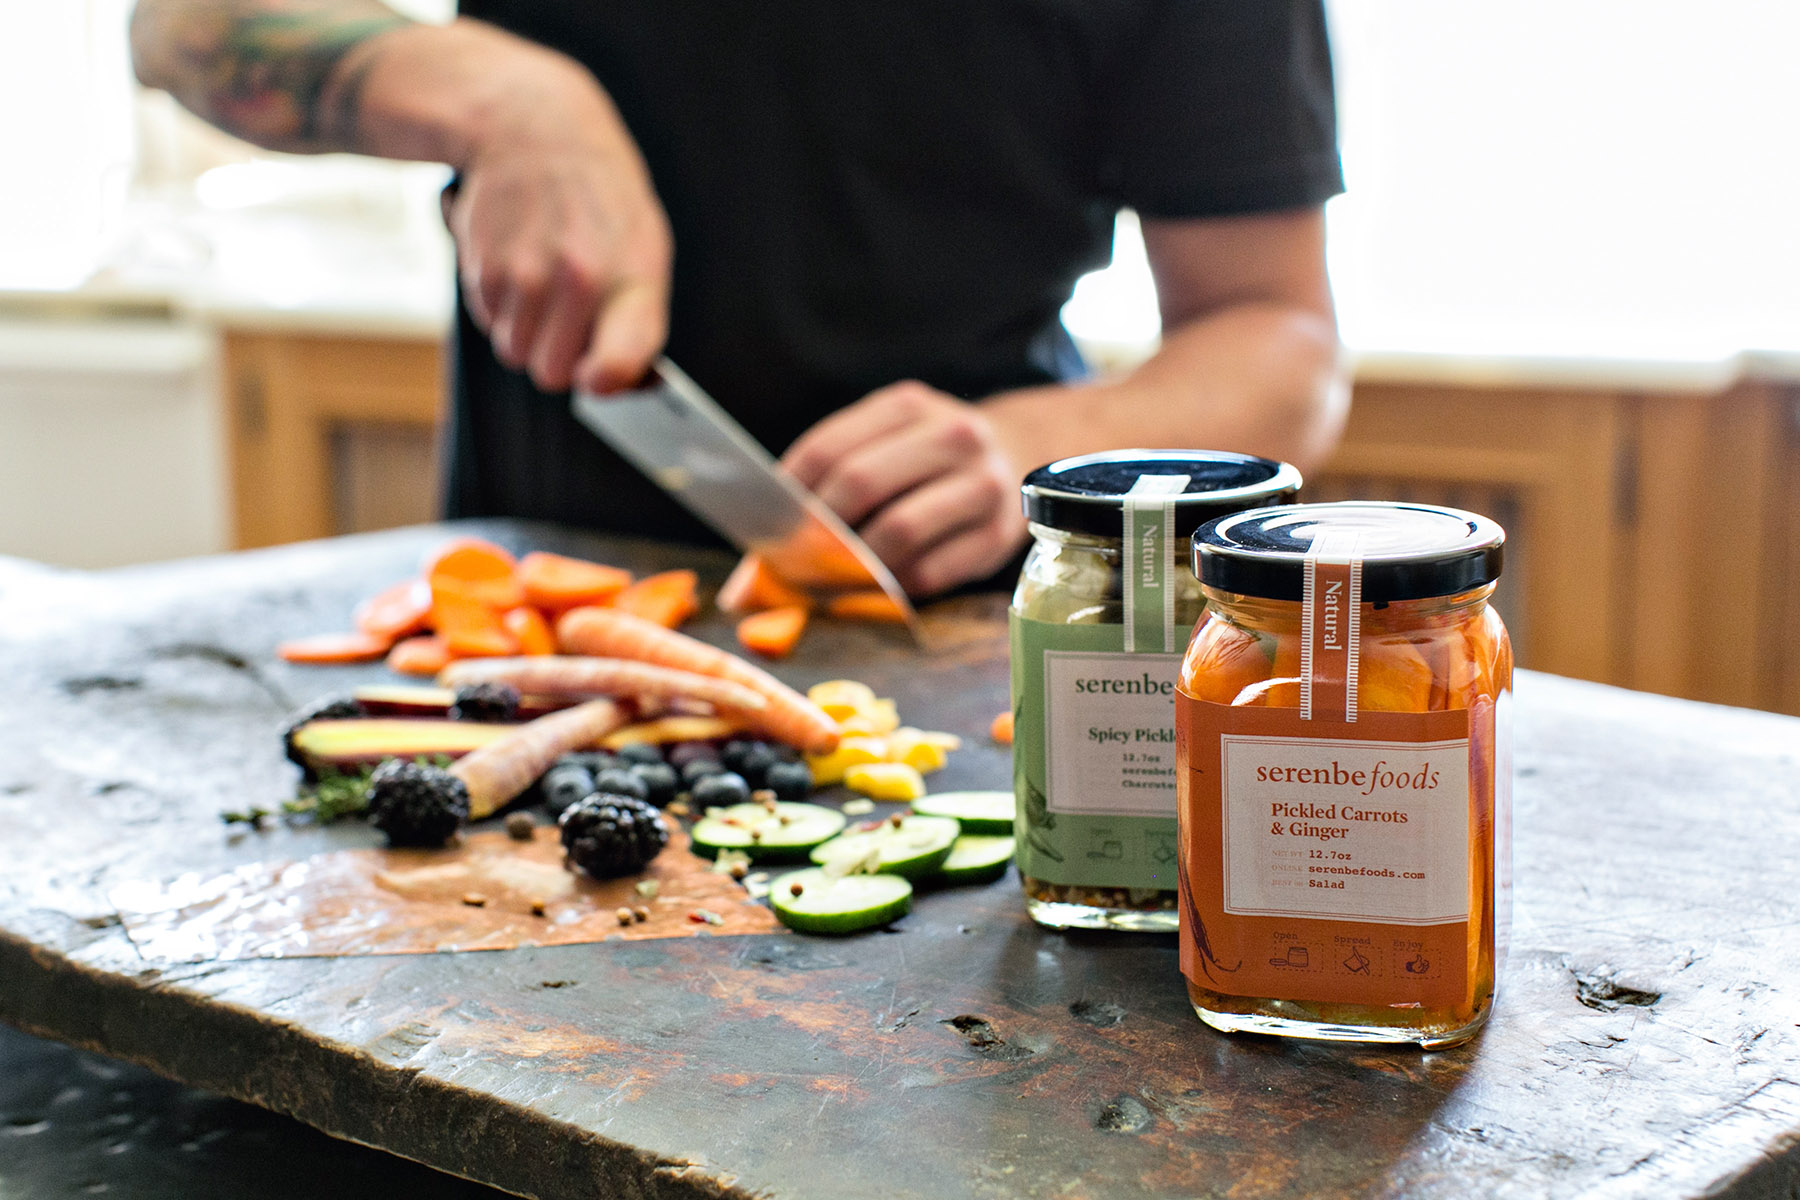 Man with knife cuts carrots and pickles in the background, with natural jelly and jam jars of Serenbe Foods in the foreground, designed by Russell Shaw.